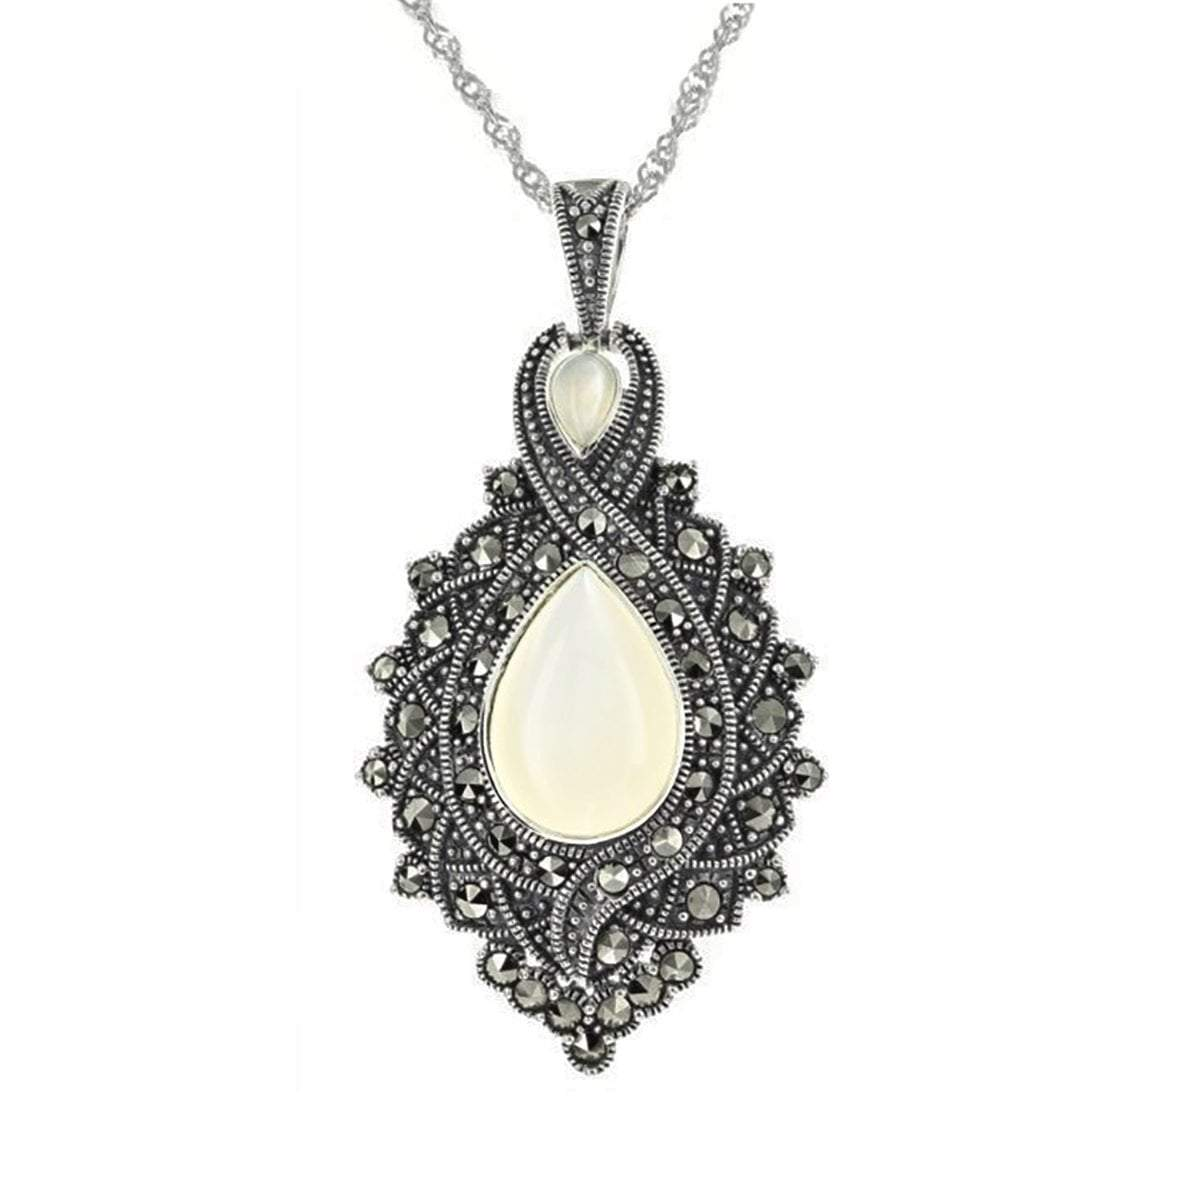 Marcasite & Mother of Pearl Pendant in Sterling Silver